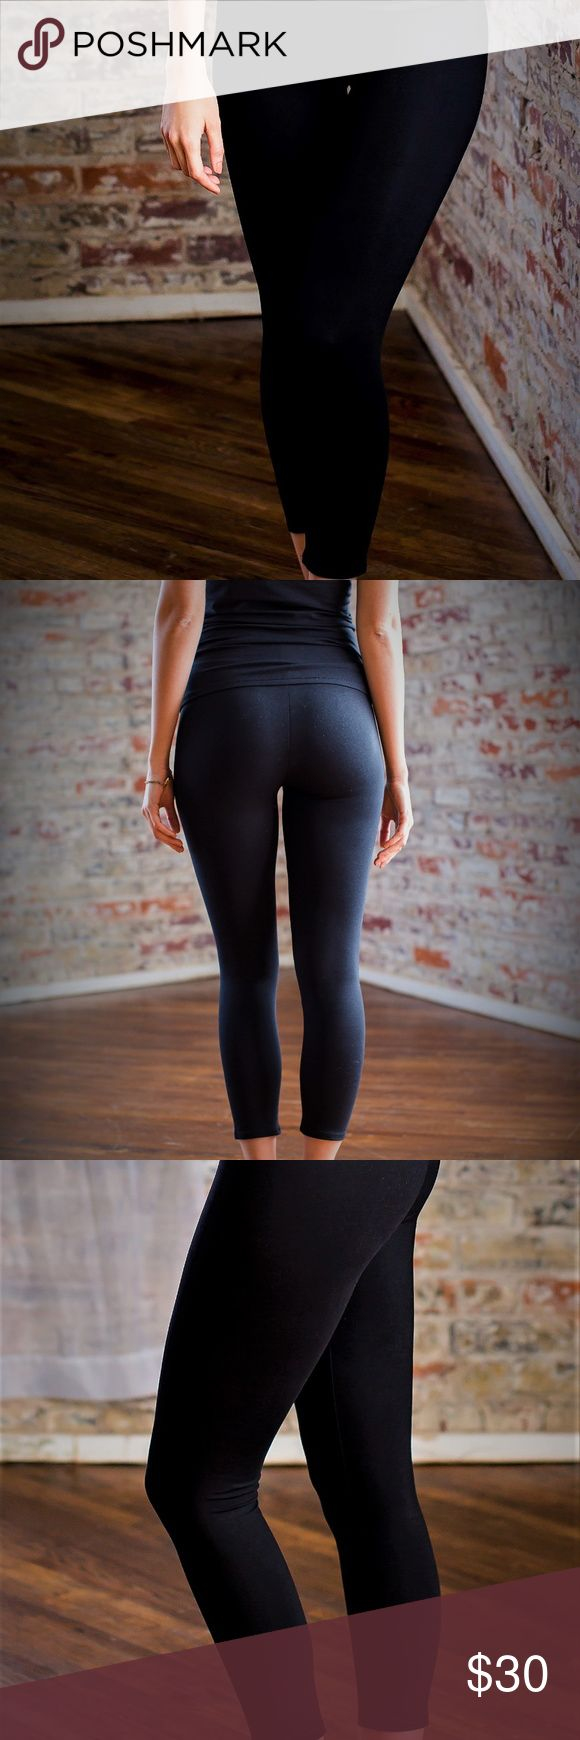 Organic Cotton - Women 3/4 Legging. BRAND NEW! Never see-through. Comfy cozy cotton and just enough stretch for the perfect fit. Comfortable rise that sits at your true waist 92% Organic cotton & 8% Elasthan GOTS Certified Fair Trade Cotton US Seller Orgassm Organic Pants Leggings